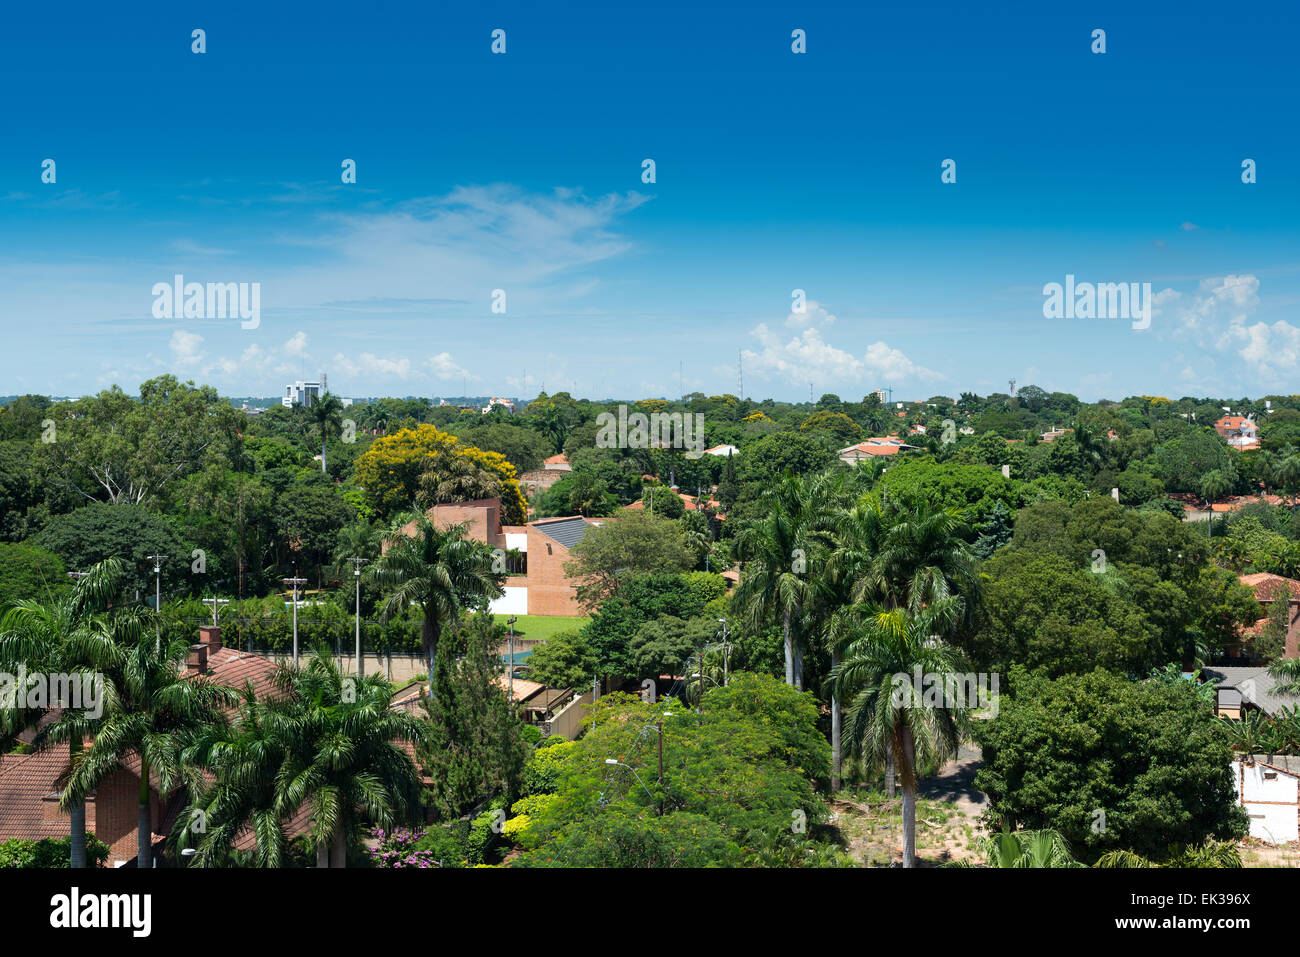 View of a residential neighborhood at Asuncion, Paraguay - Stock Image